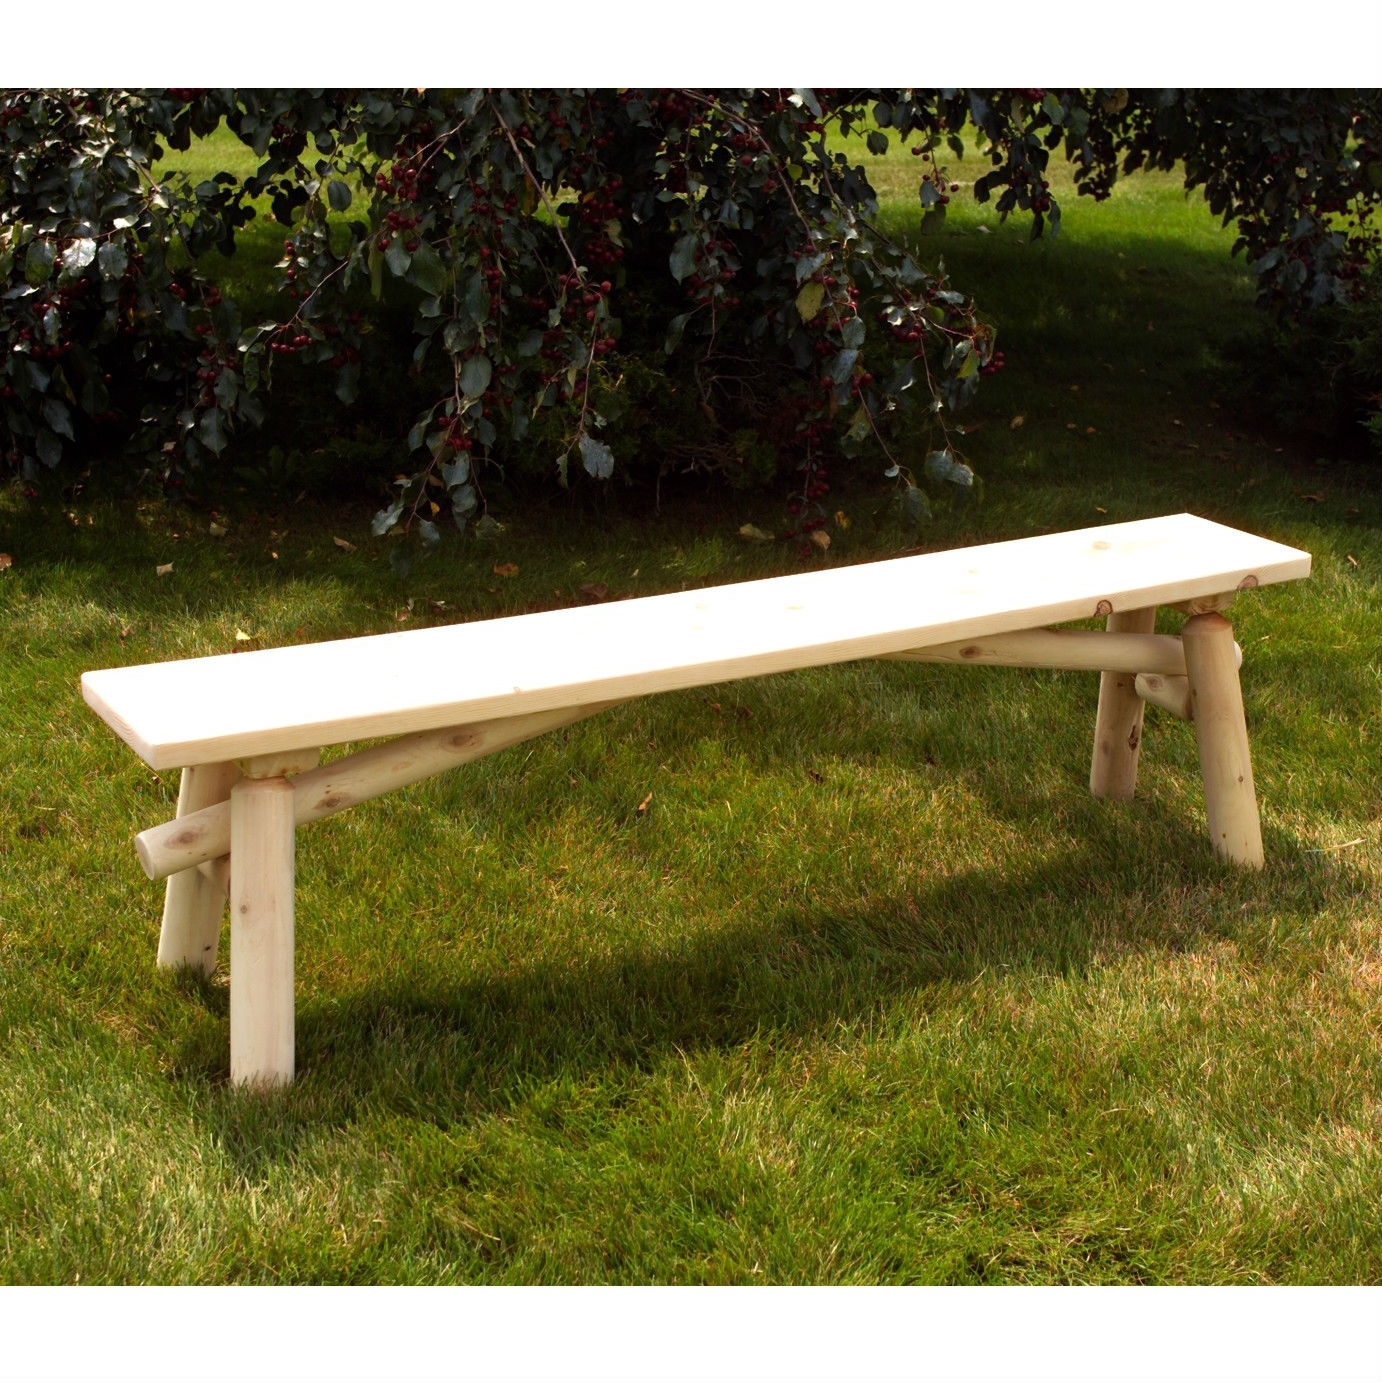 Unfinished Pine Wood Outdoor Picnic Garden Bench - Made in USA, UWPB12448 :  This Unfinished Pine Wood Outdoor Picnic Garden Bench - Made in USA is an ideal seat for any bonfire or family gathering. Moon Valley warrants its products to be free from manufacturing defects for a period of one year after its purchase. Finish is not included under the limited warranty. Heavy-duty hardware utilized; Made in the USA; Sturdy doweled construction; Frame Material Details: Wood; Assembly Required: Yes; Tools Needed for Assembly: Drill or screwdriver and rubber mallet or hammer; Hardware Material: Stainless steel; Rust Resistant: Yes; Seating Capacity: 3; Weight Capacity: 425 Pounds; Commercial Use: Yes; Product Care: Wipe clean with a lint free rag.